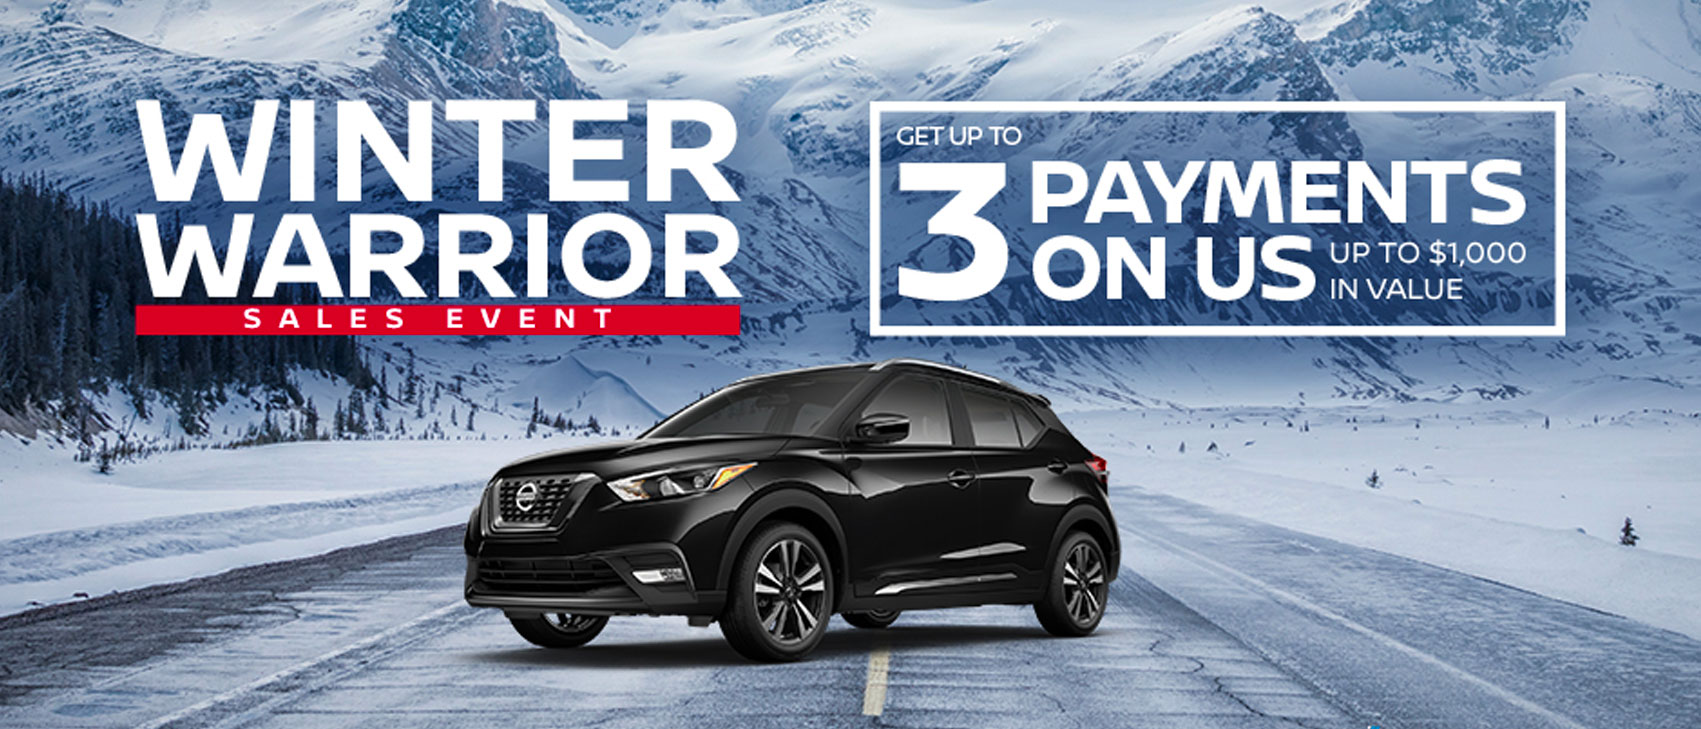 Winterwarrior Nissan Feb